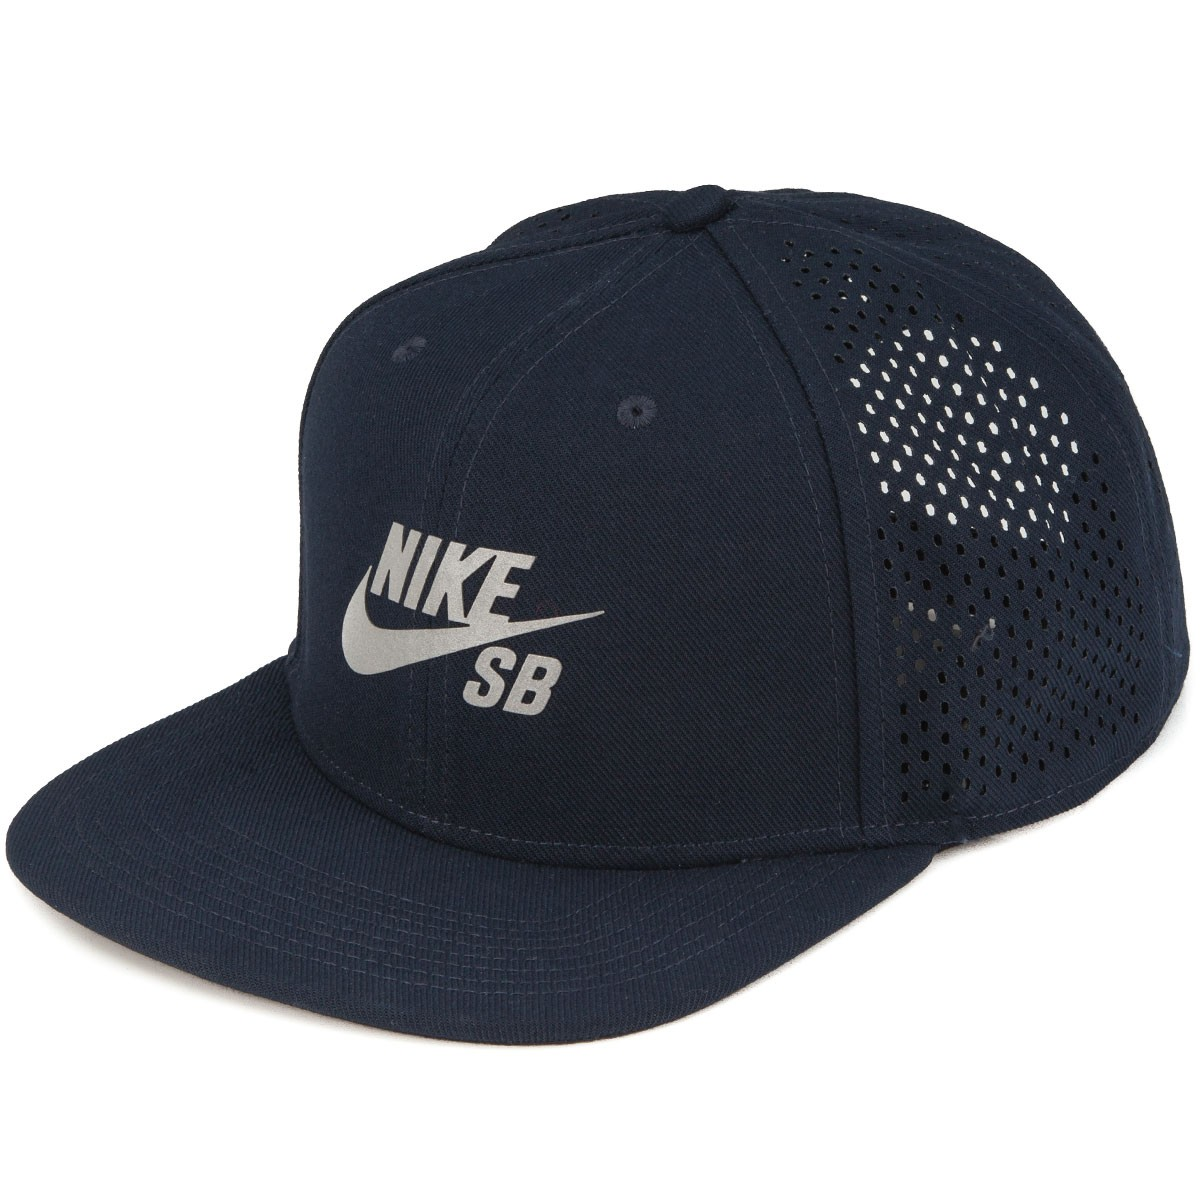 Nike SB Performance Pro Trucker Hat - Dark Obsidian Black Reflective Silver 6f0b622813f